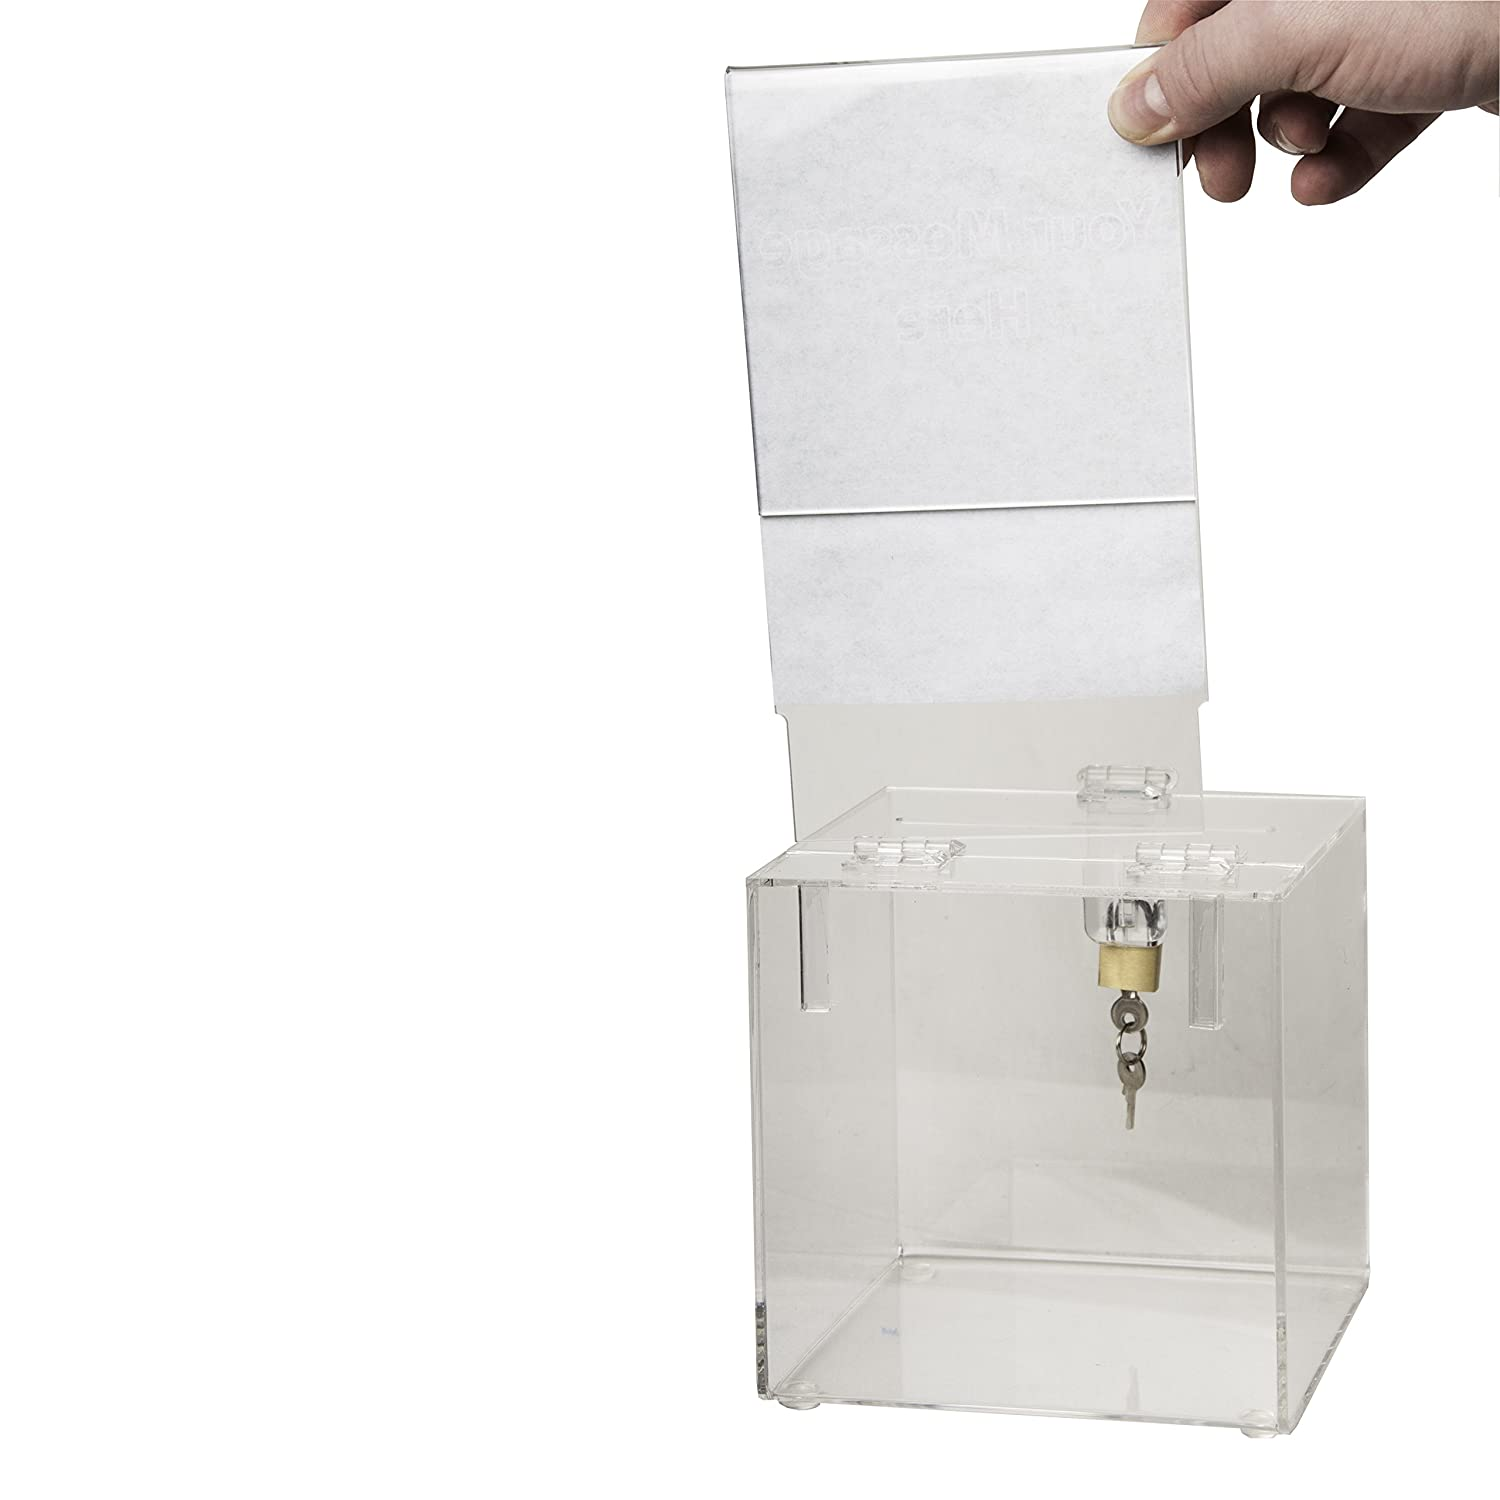 Clear Suggestion Box Container for Voting Charity,Ballot Ballot Box with Sign Holder Acrylic Donation Box with Lock